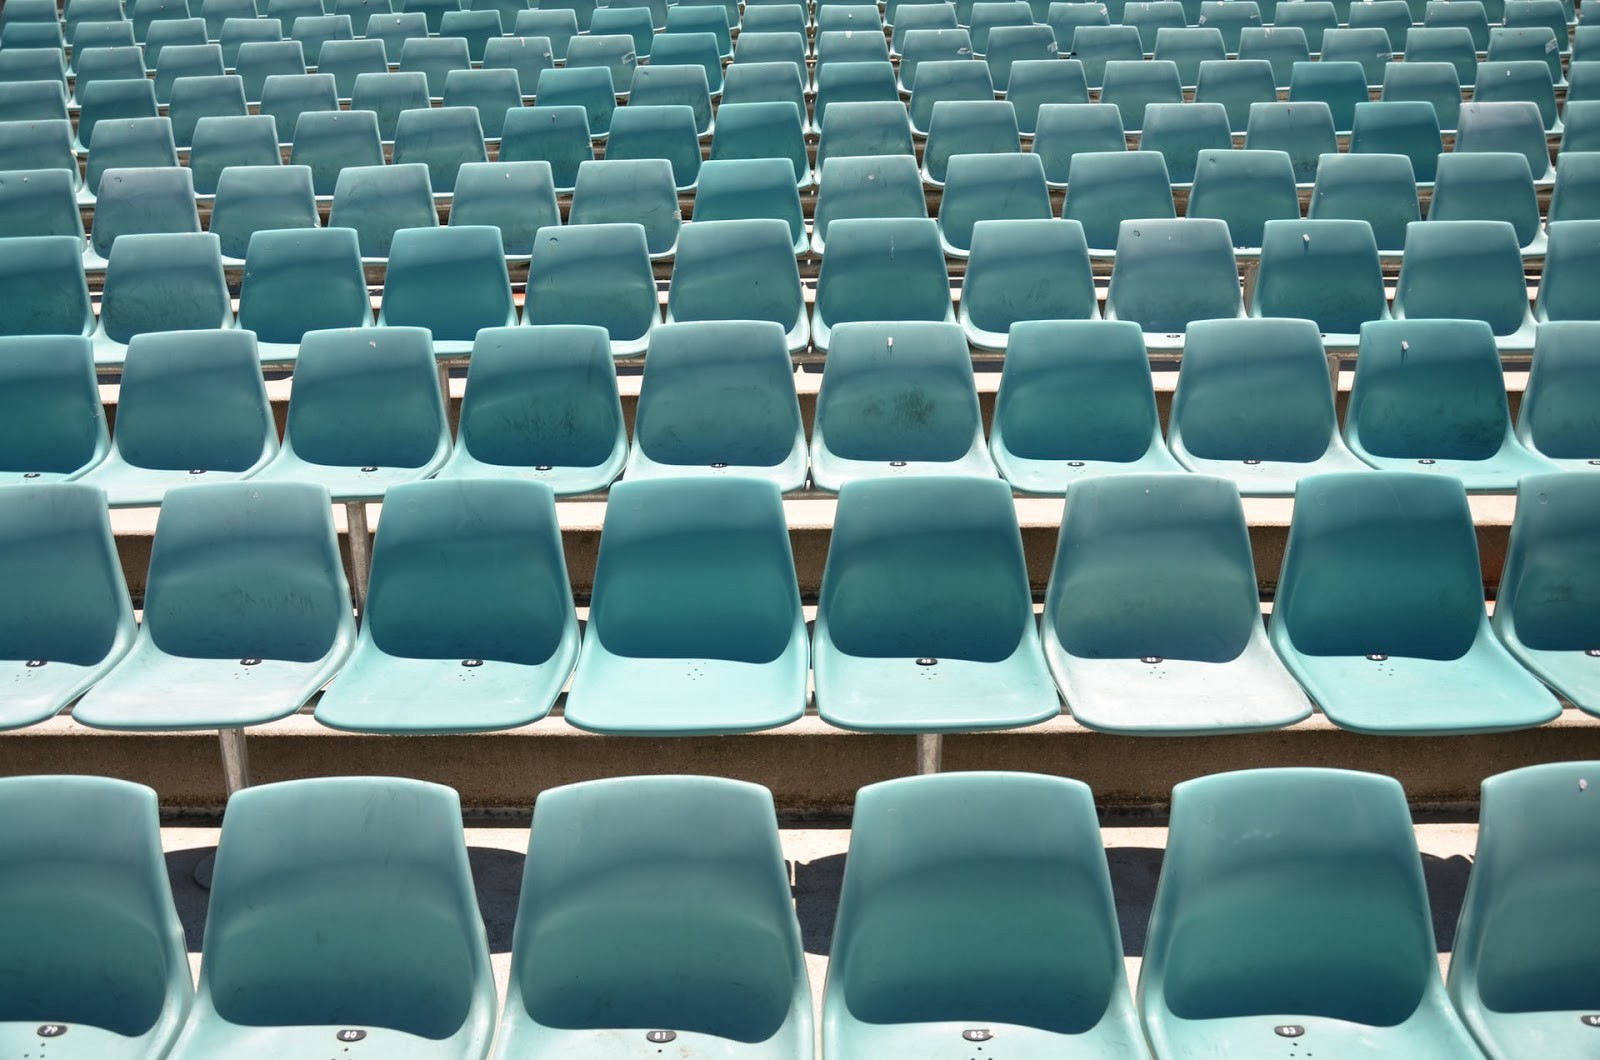 Rows of identical blue chairs